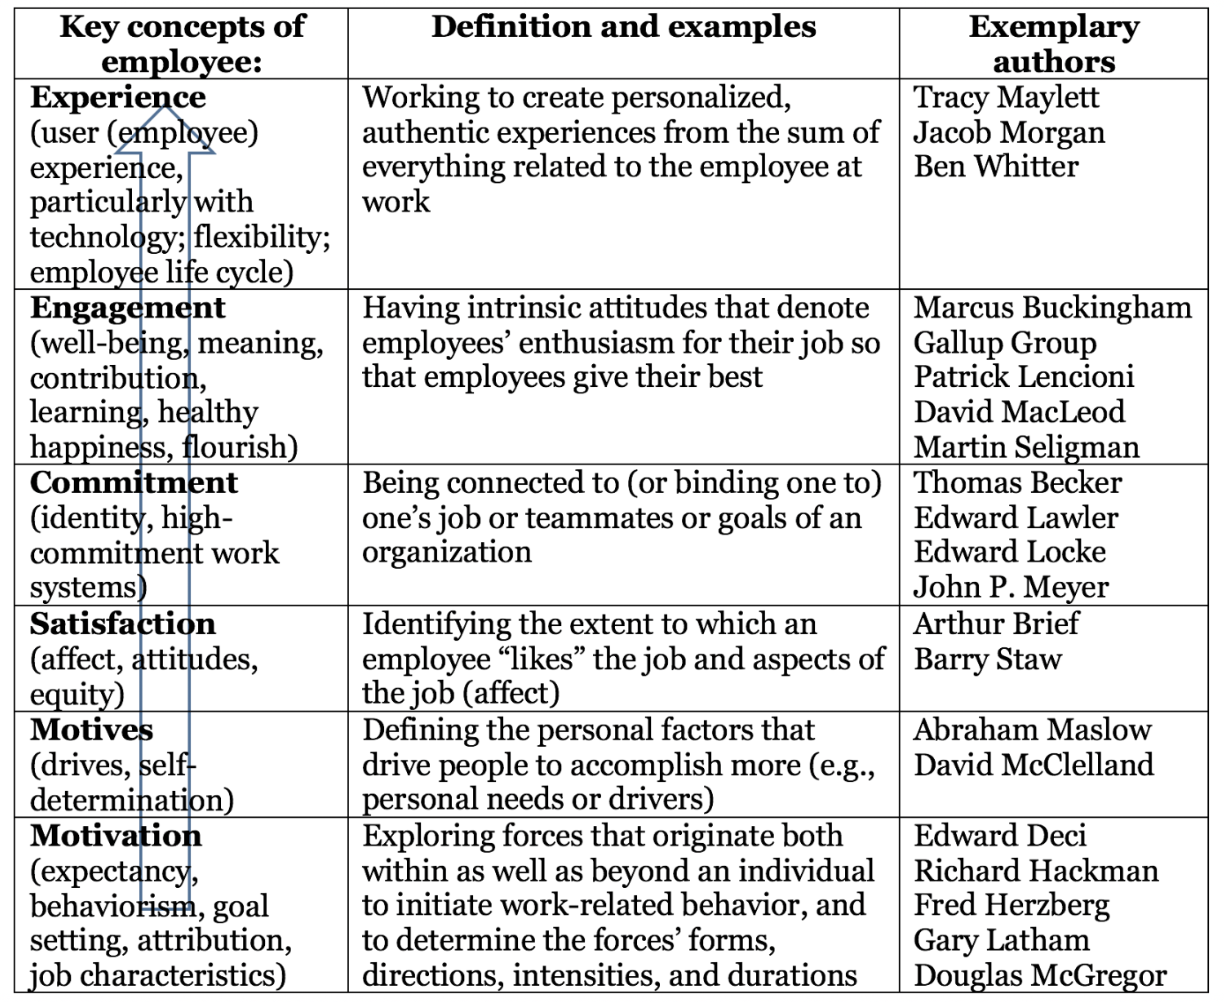 FIG 4:    Evolution of Talent Sentiment concepts (Source: Dave Ulrich)